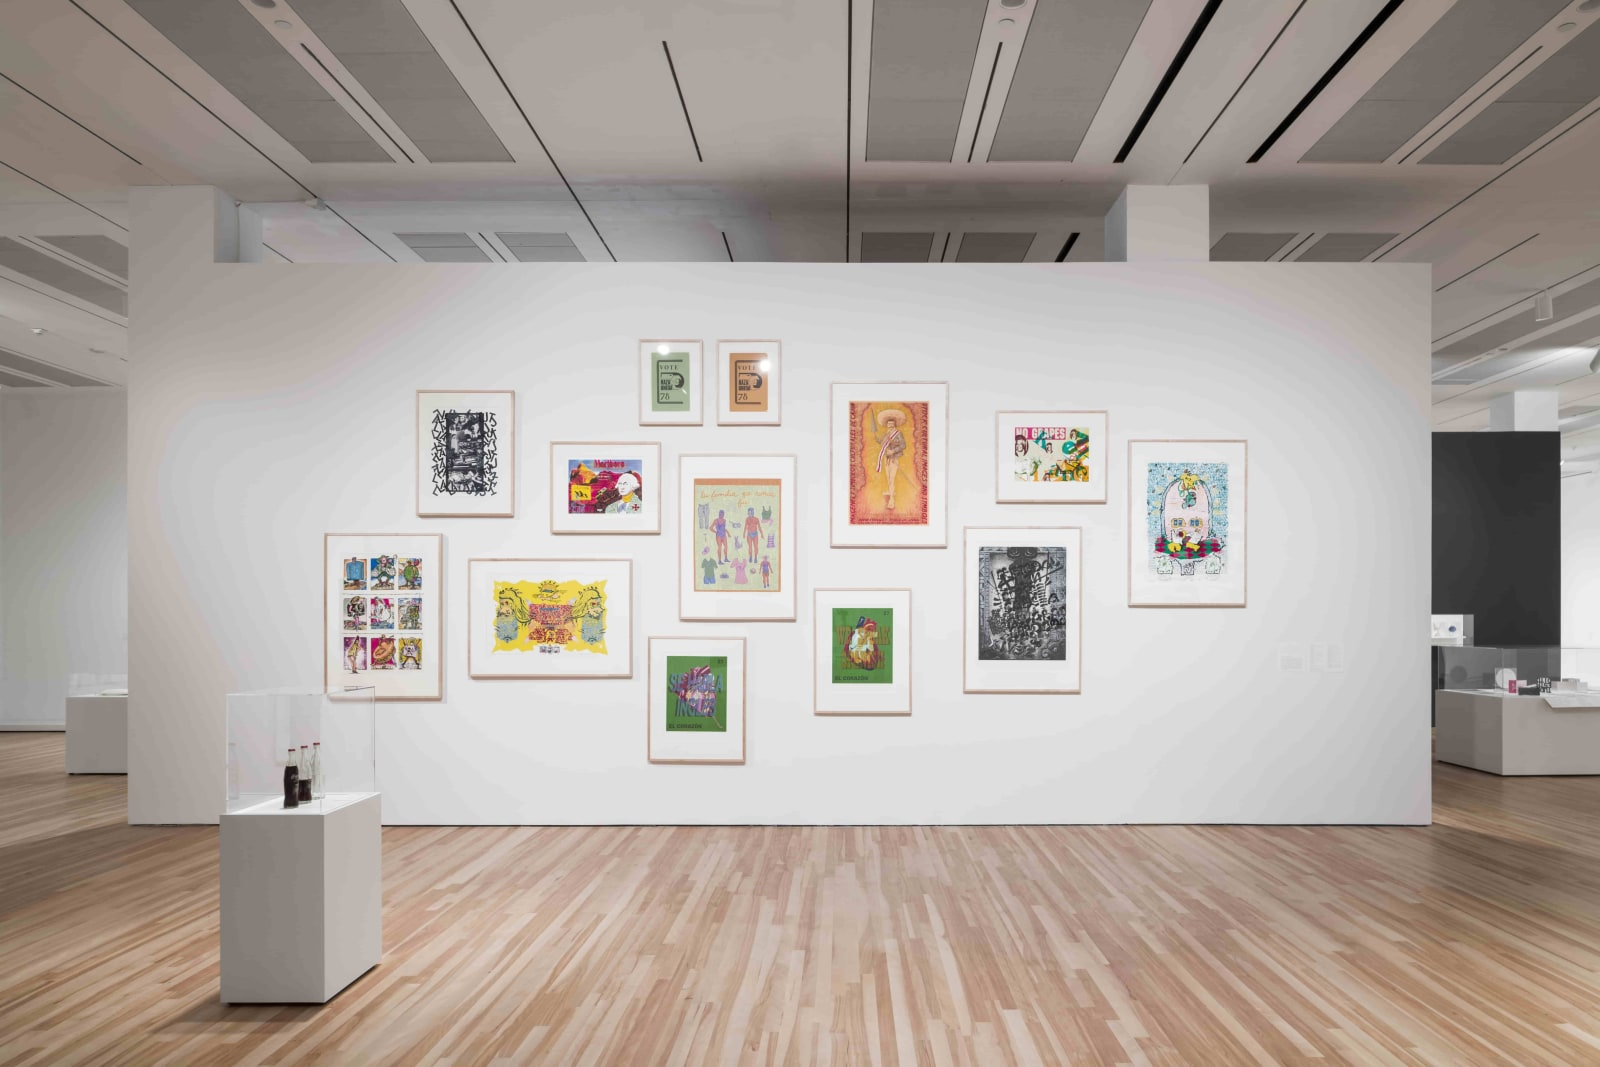 Installation View of Words/Matter: Latin American Art and Language at the Blanton at the Blanton Museum of Art, The University of Texas at Austin, 2019